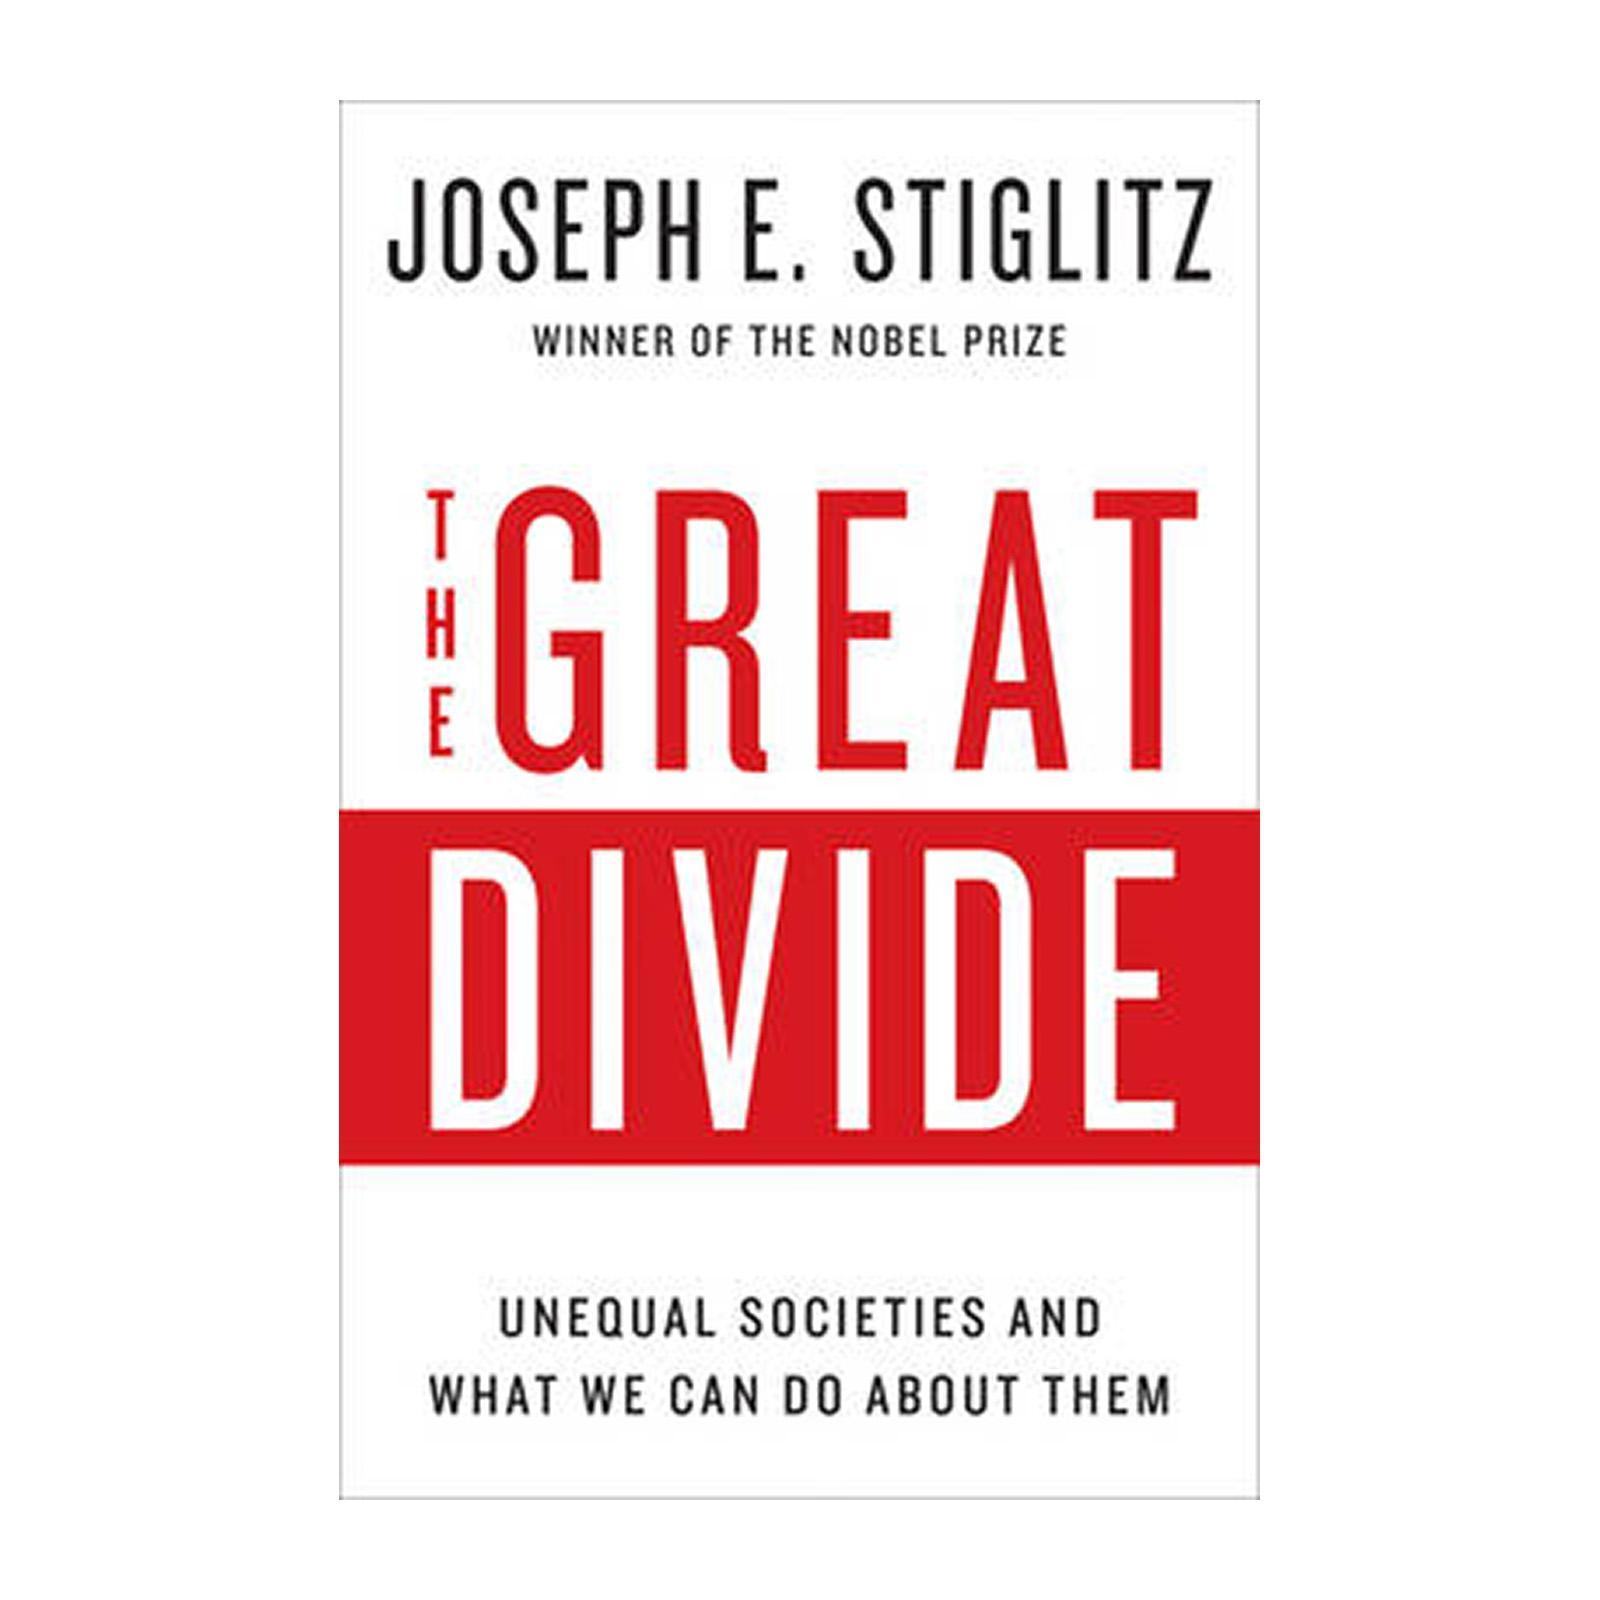 The Great Divide: Unequal Societies And What We Can Do About Them (Hardcover)